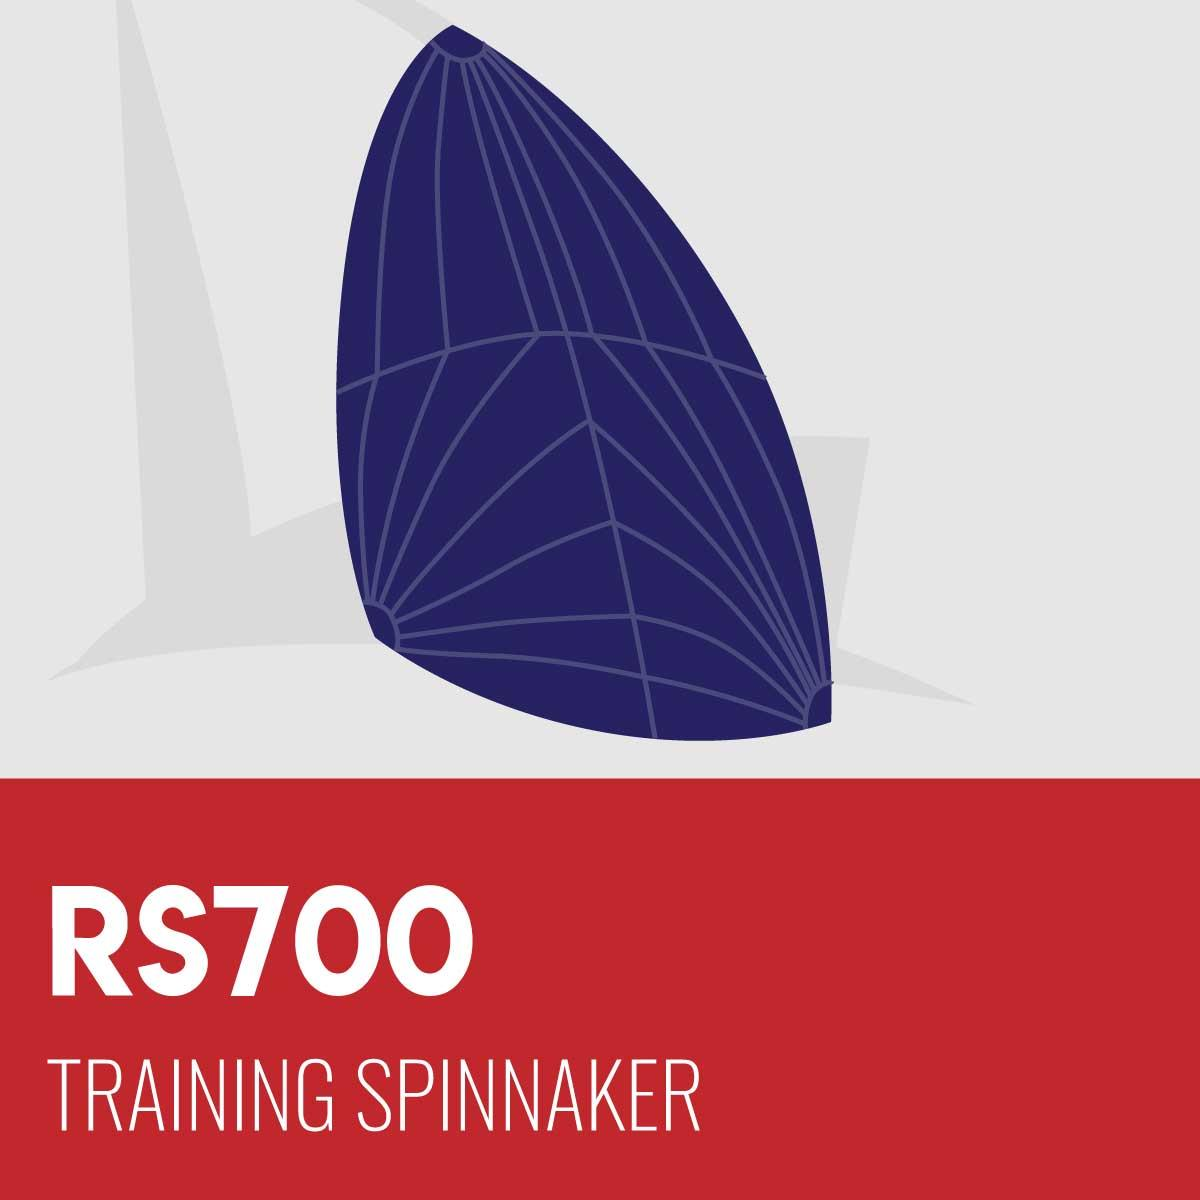 RS700 Training Spinnaker